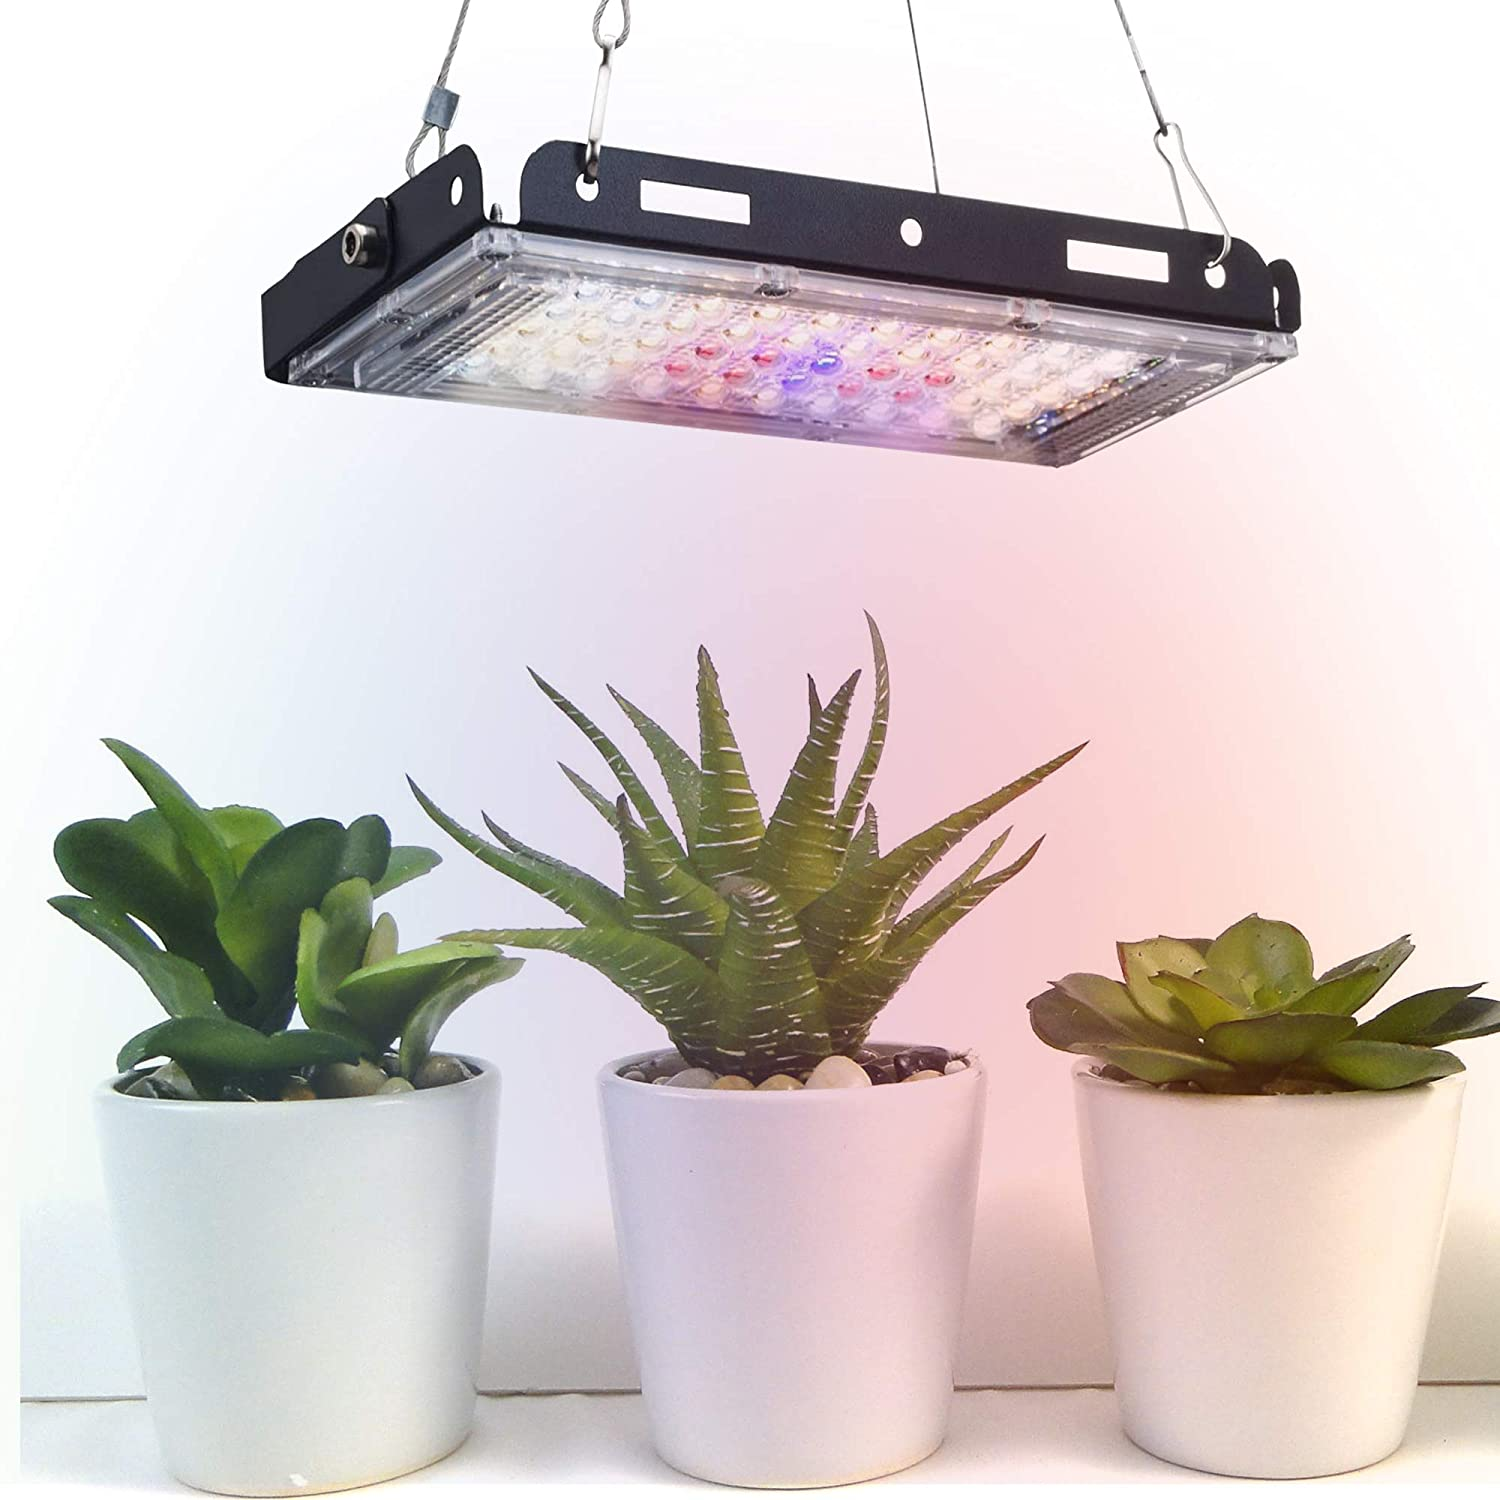 Aogled Grow Light,150W LED Grow Lights for Indoor Plants Full Spectrum with On/Off Switch,LED Growing Panel Lamp with Adjustable Grip for Micro Greens,Succulents,Seedlings,Flower,Fruit,Veg